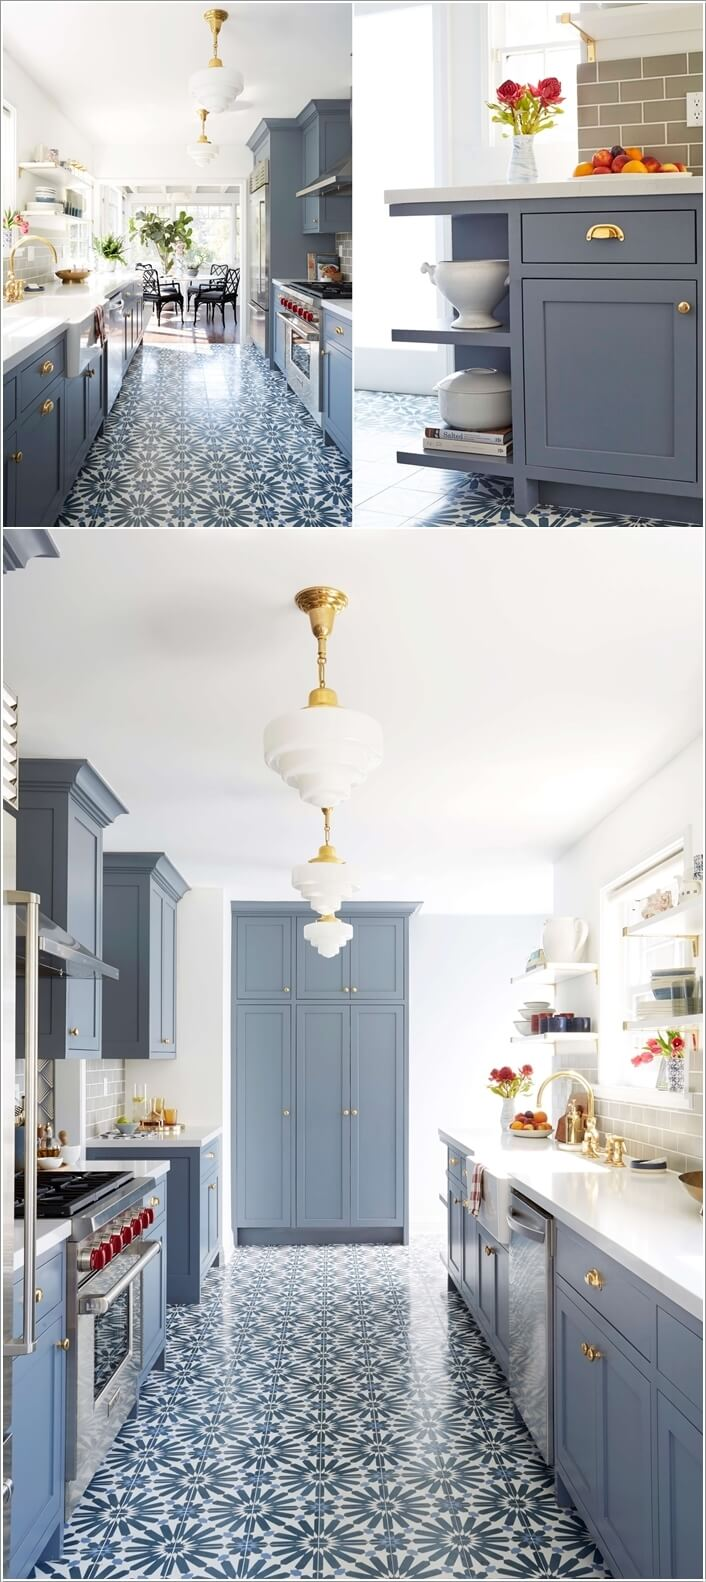 2. Keep The Cabinetry in One Simple Color and Focus on The Floor with  Patterned Tiles